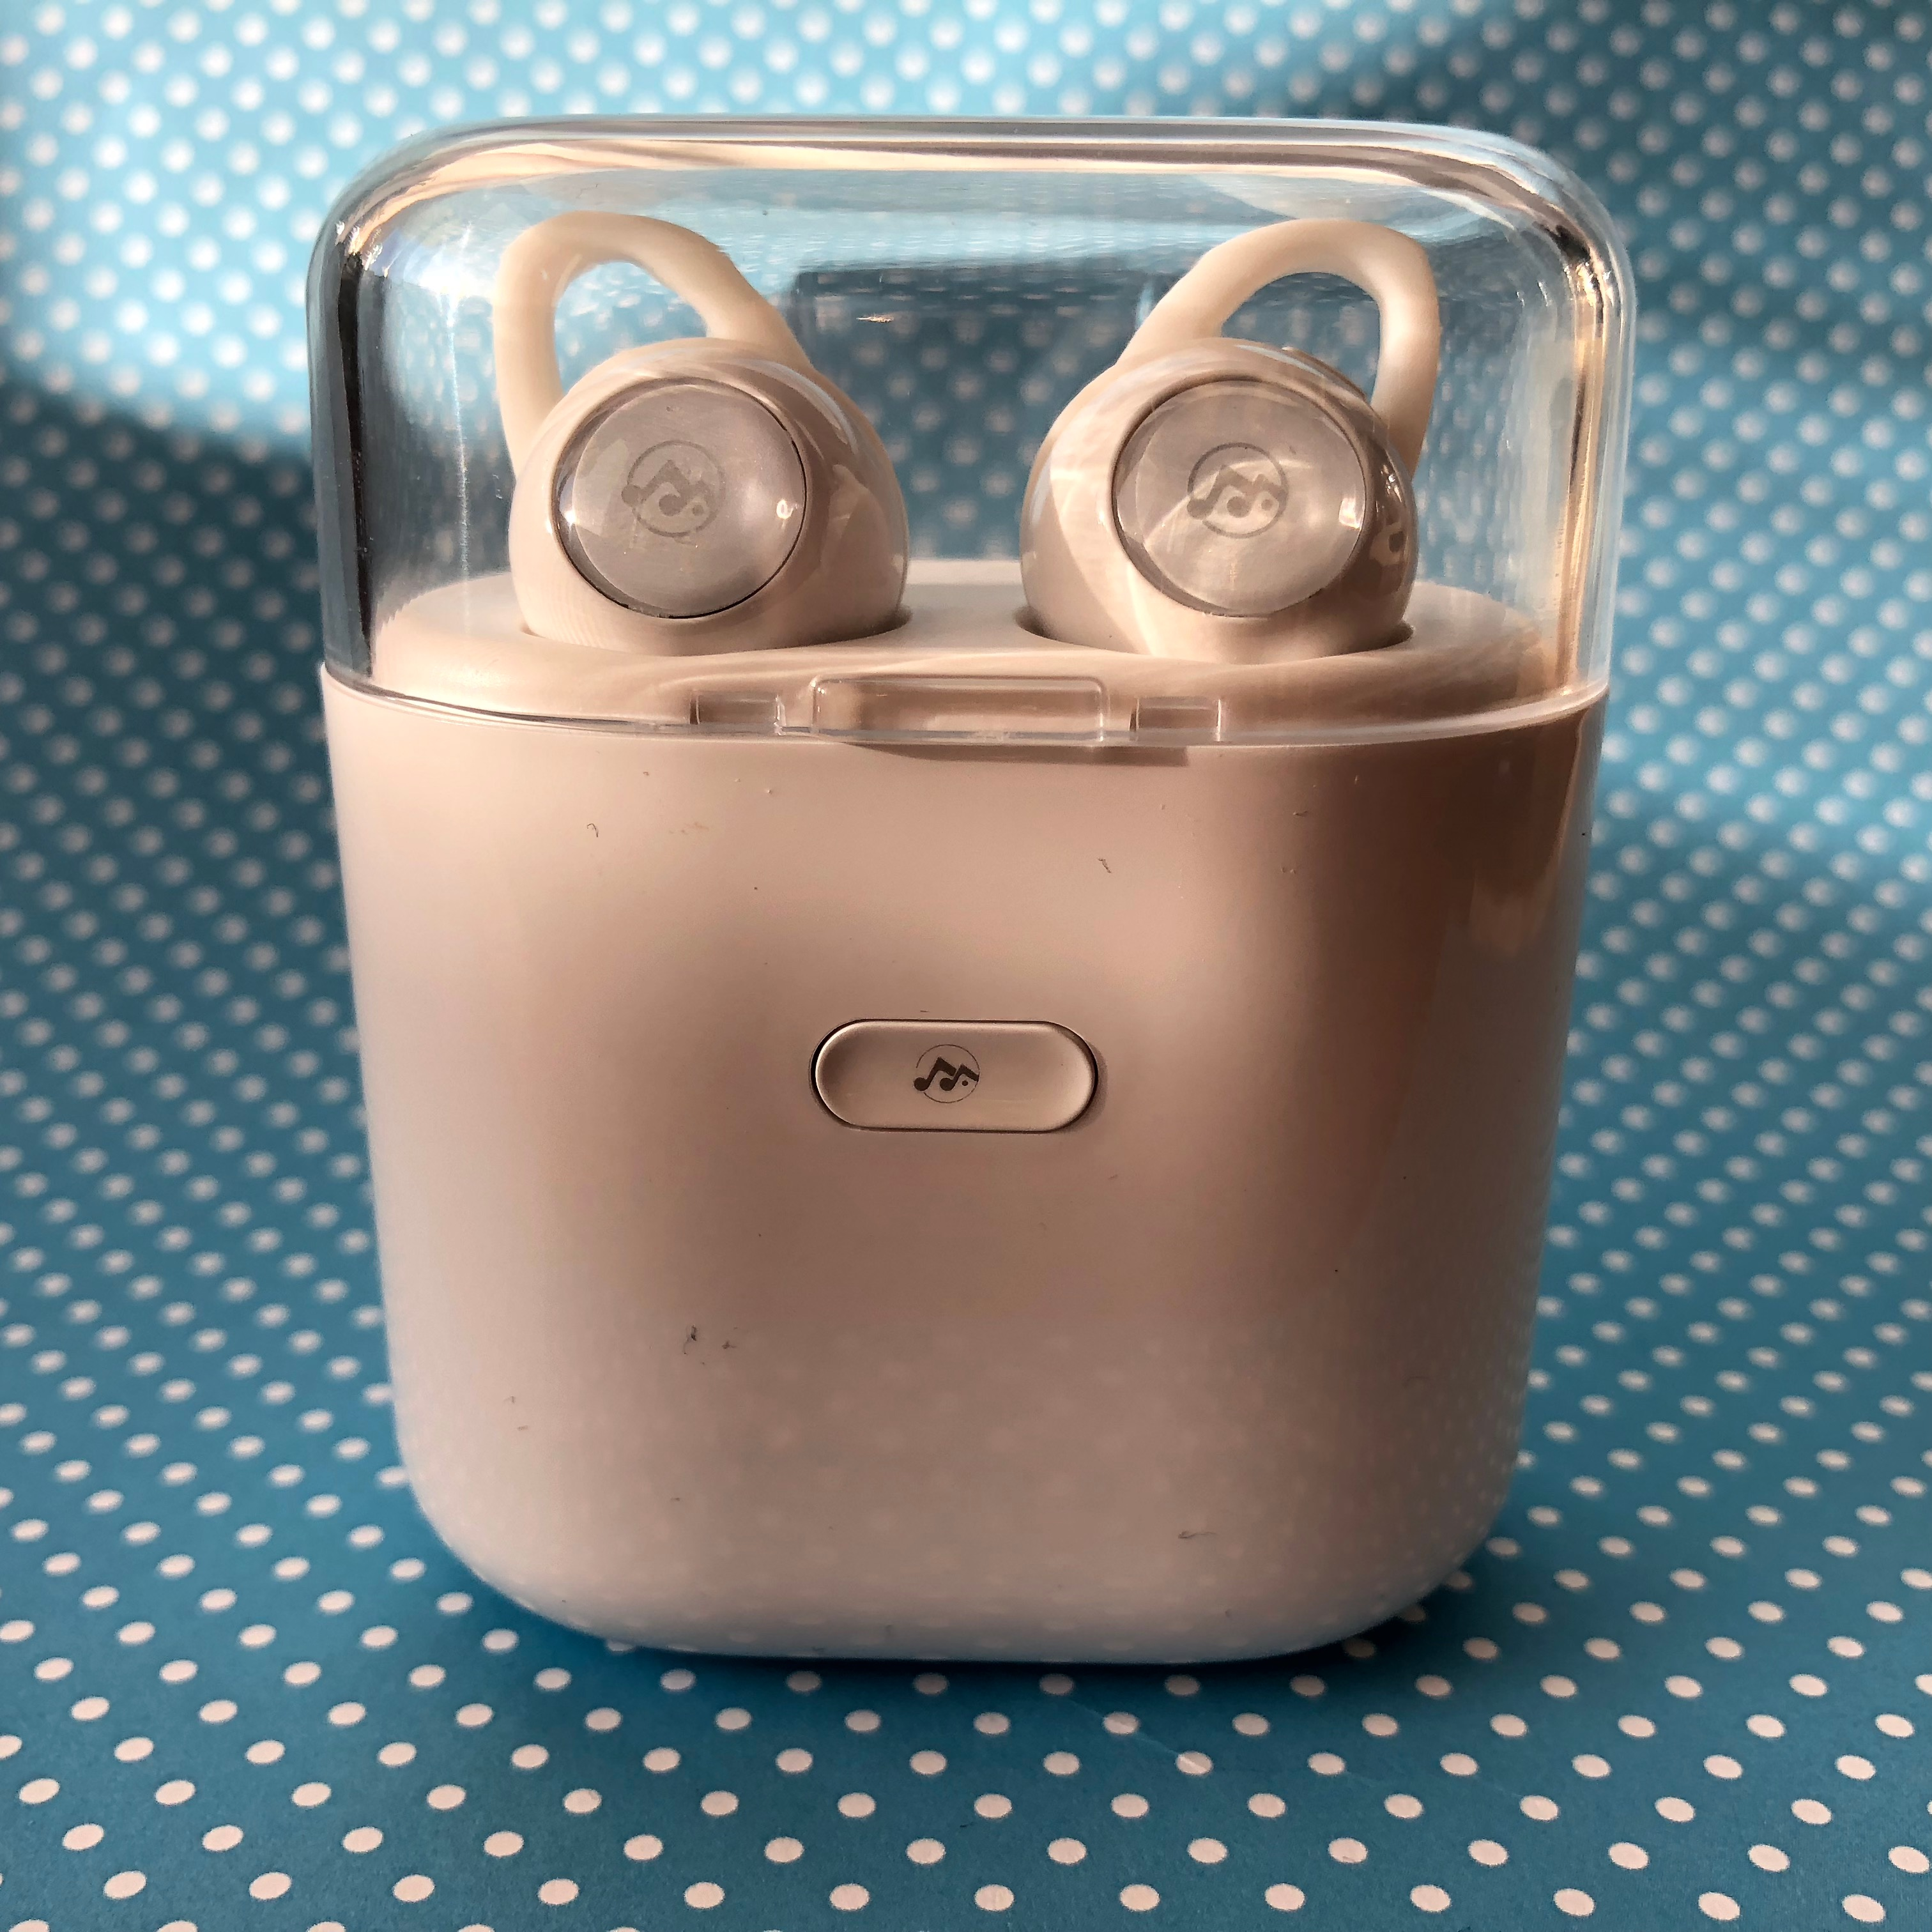 Rockpods truly wireless earbuds headphones review